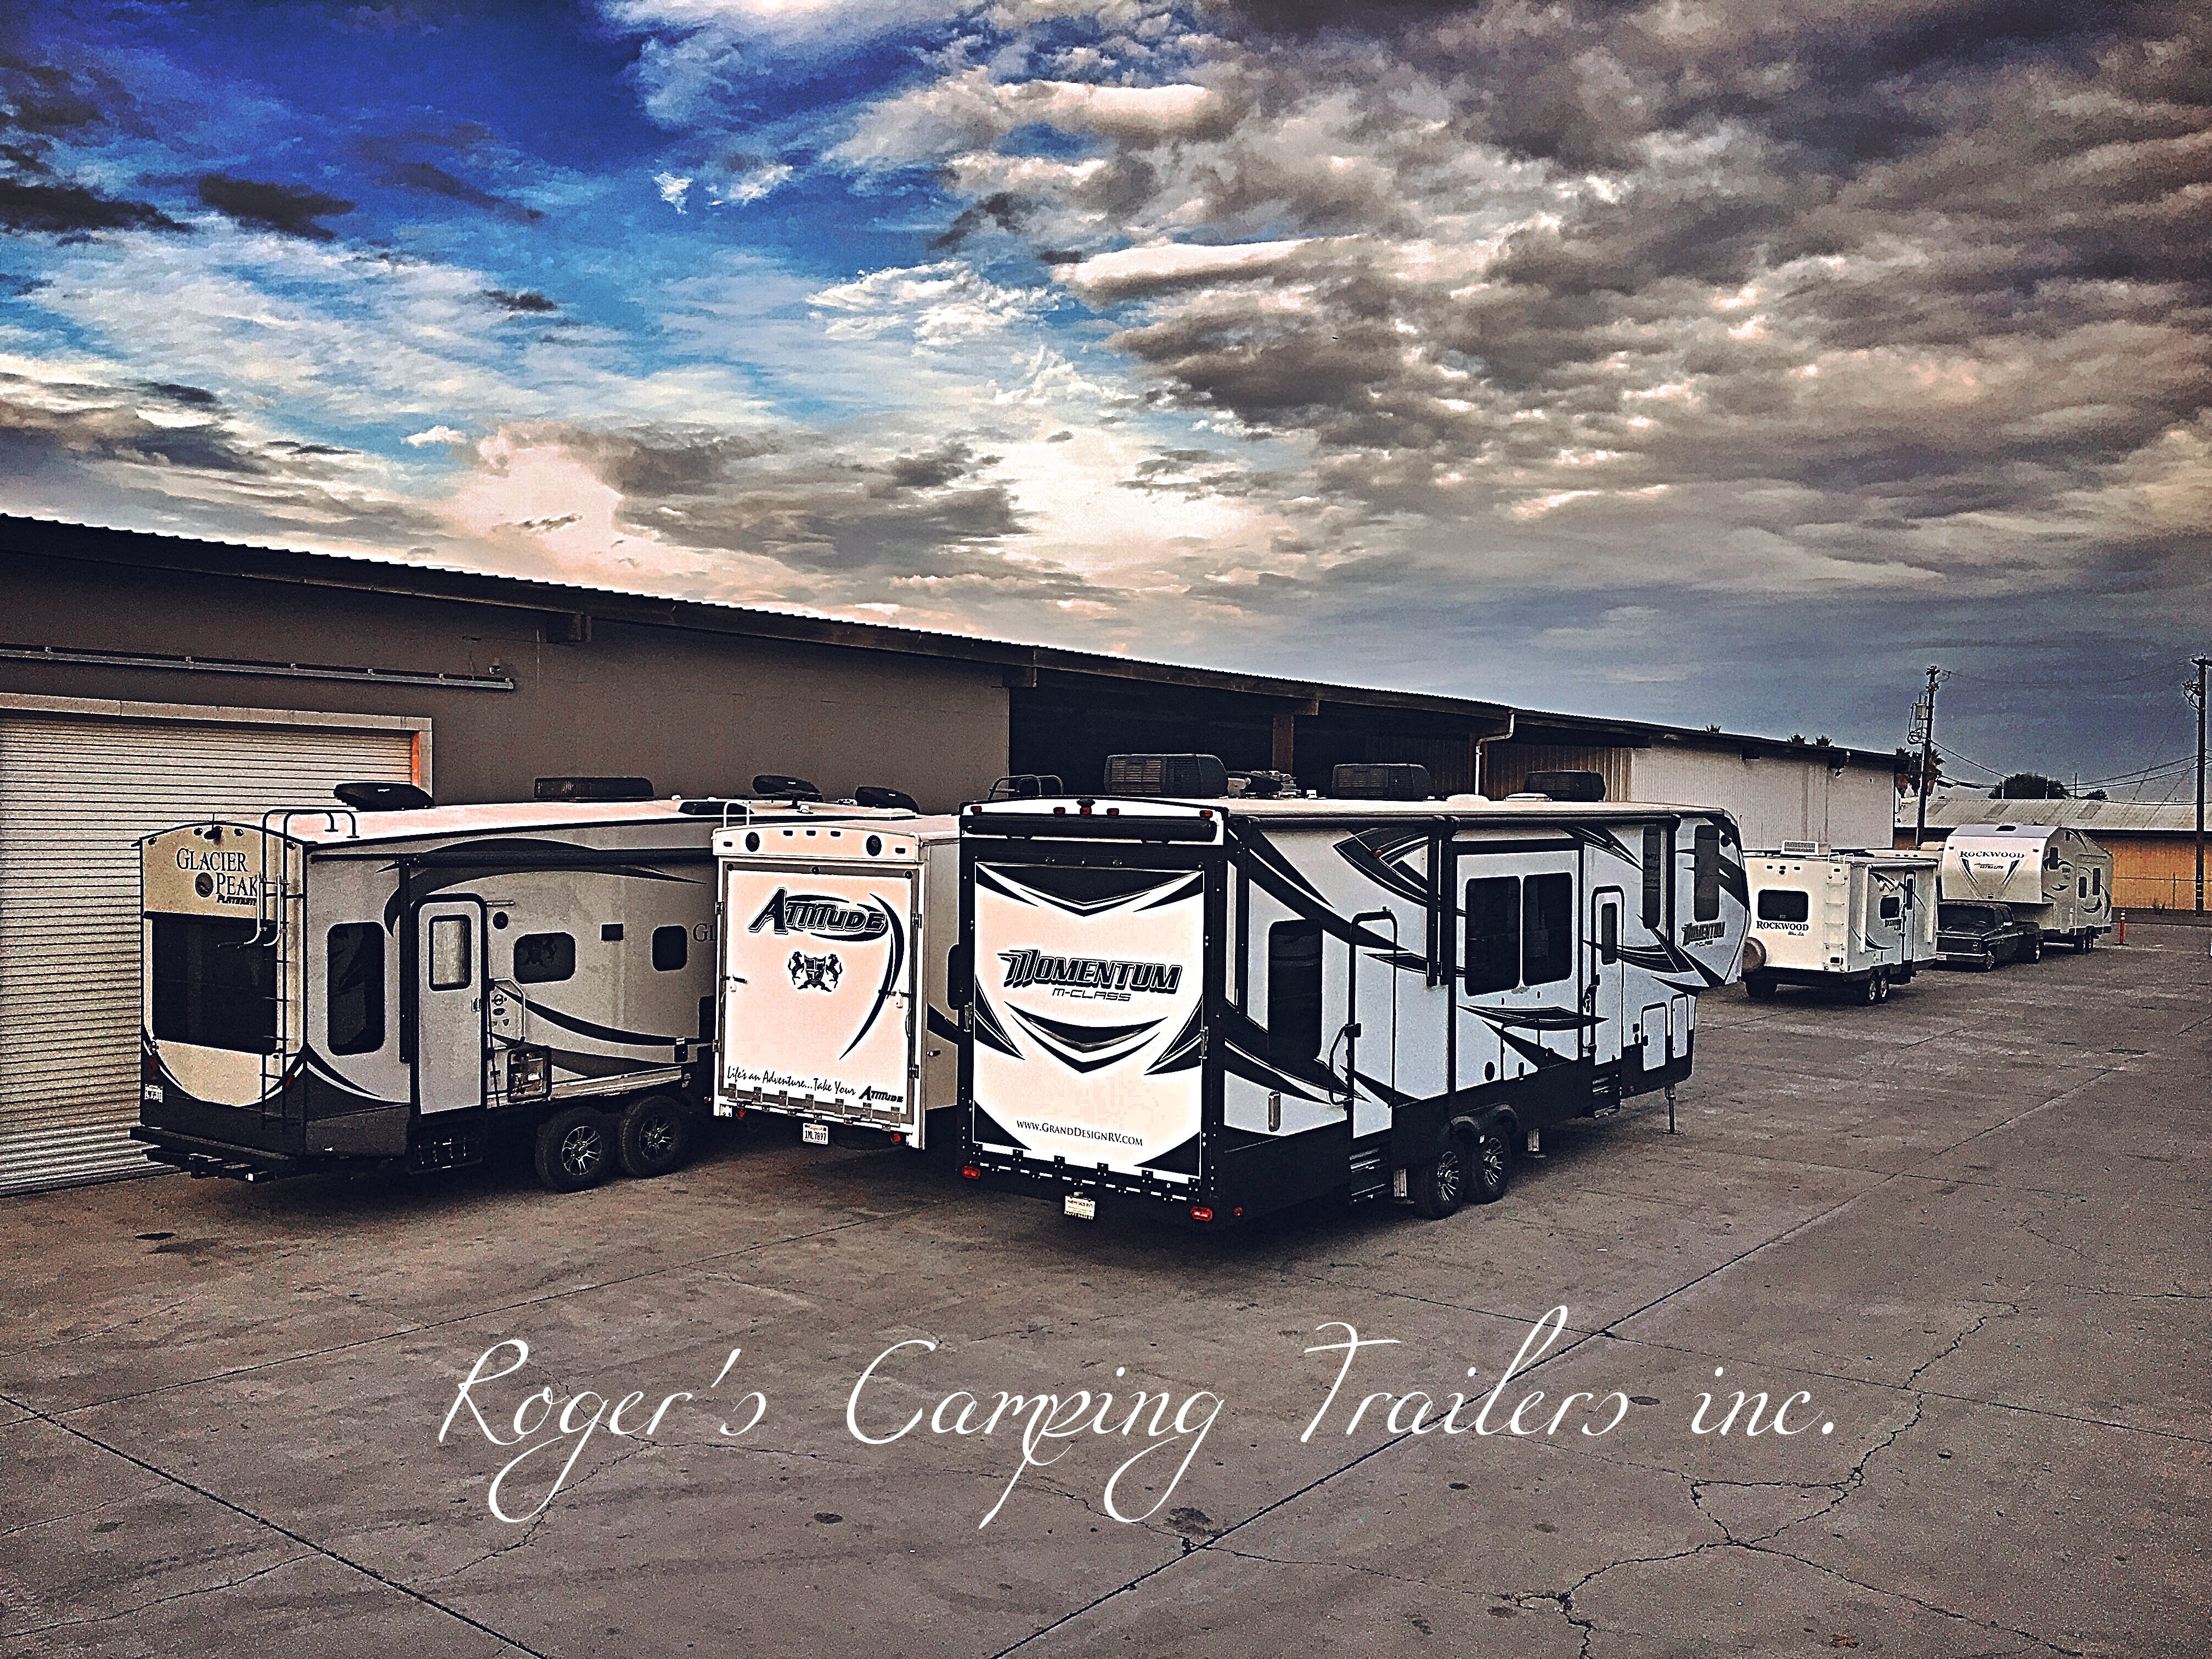 Trailer Amp Rv Services Tracy Ca Roger S Camping